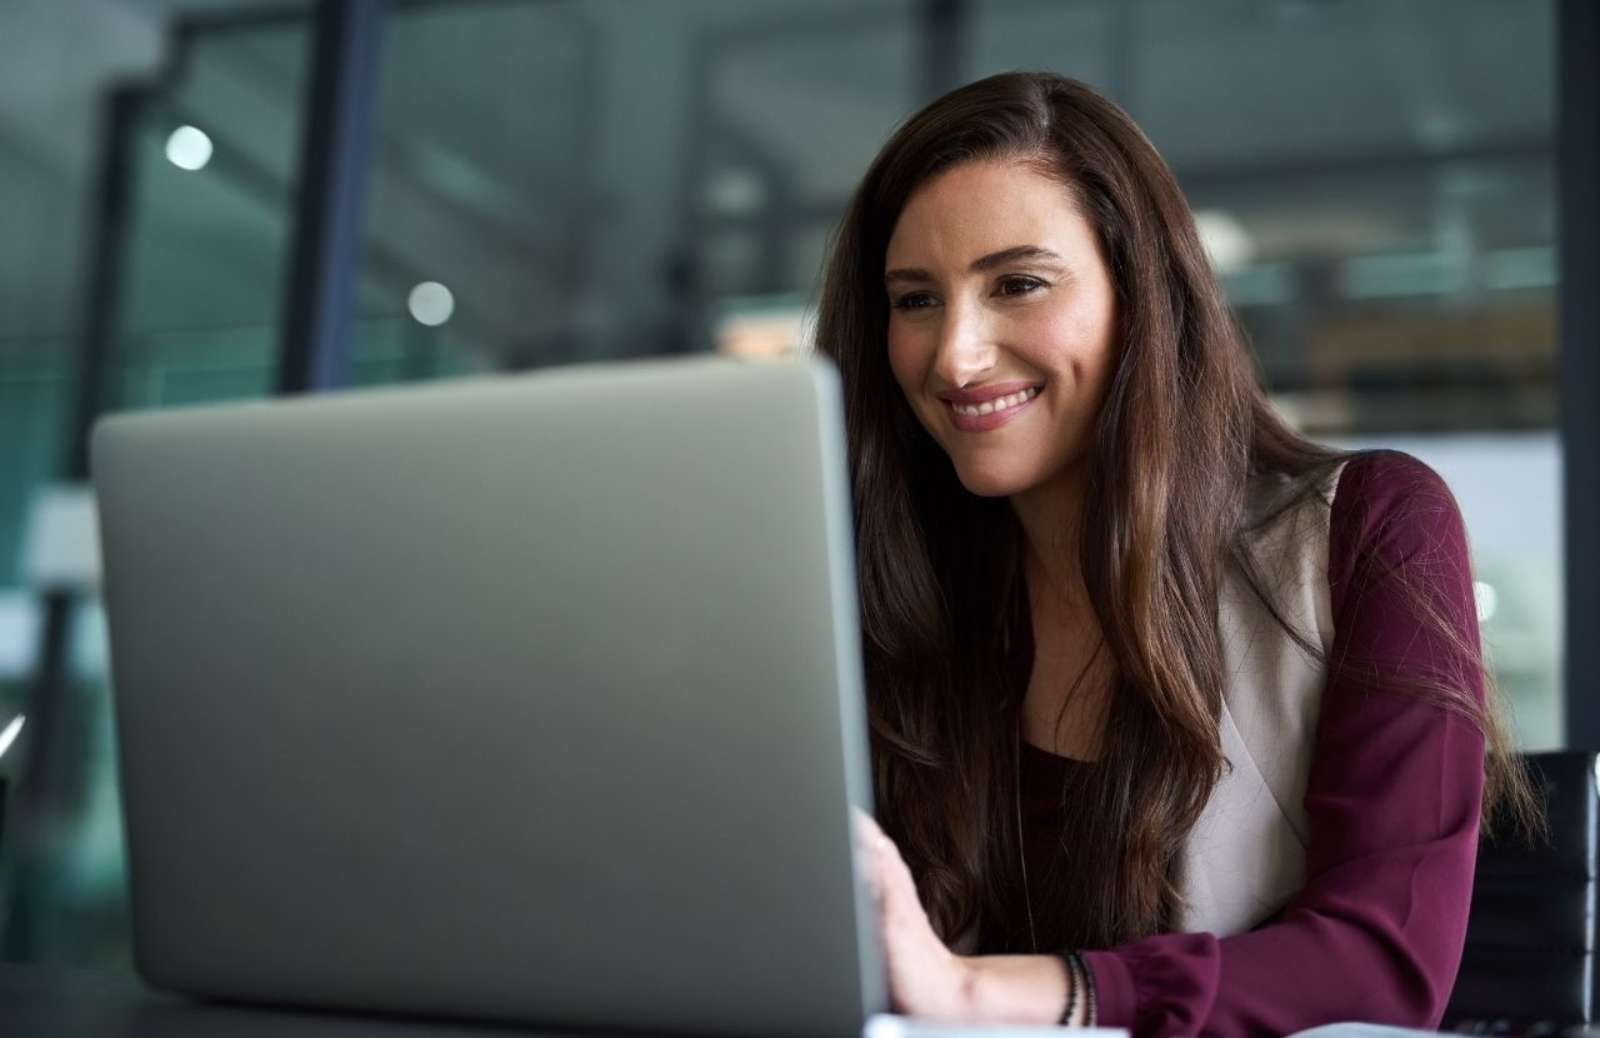 Woman smiling as she looks at laptop computer screen